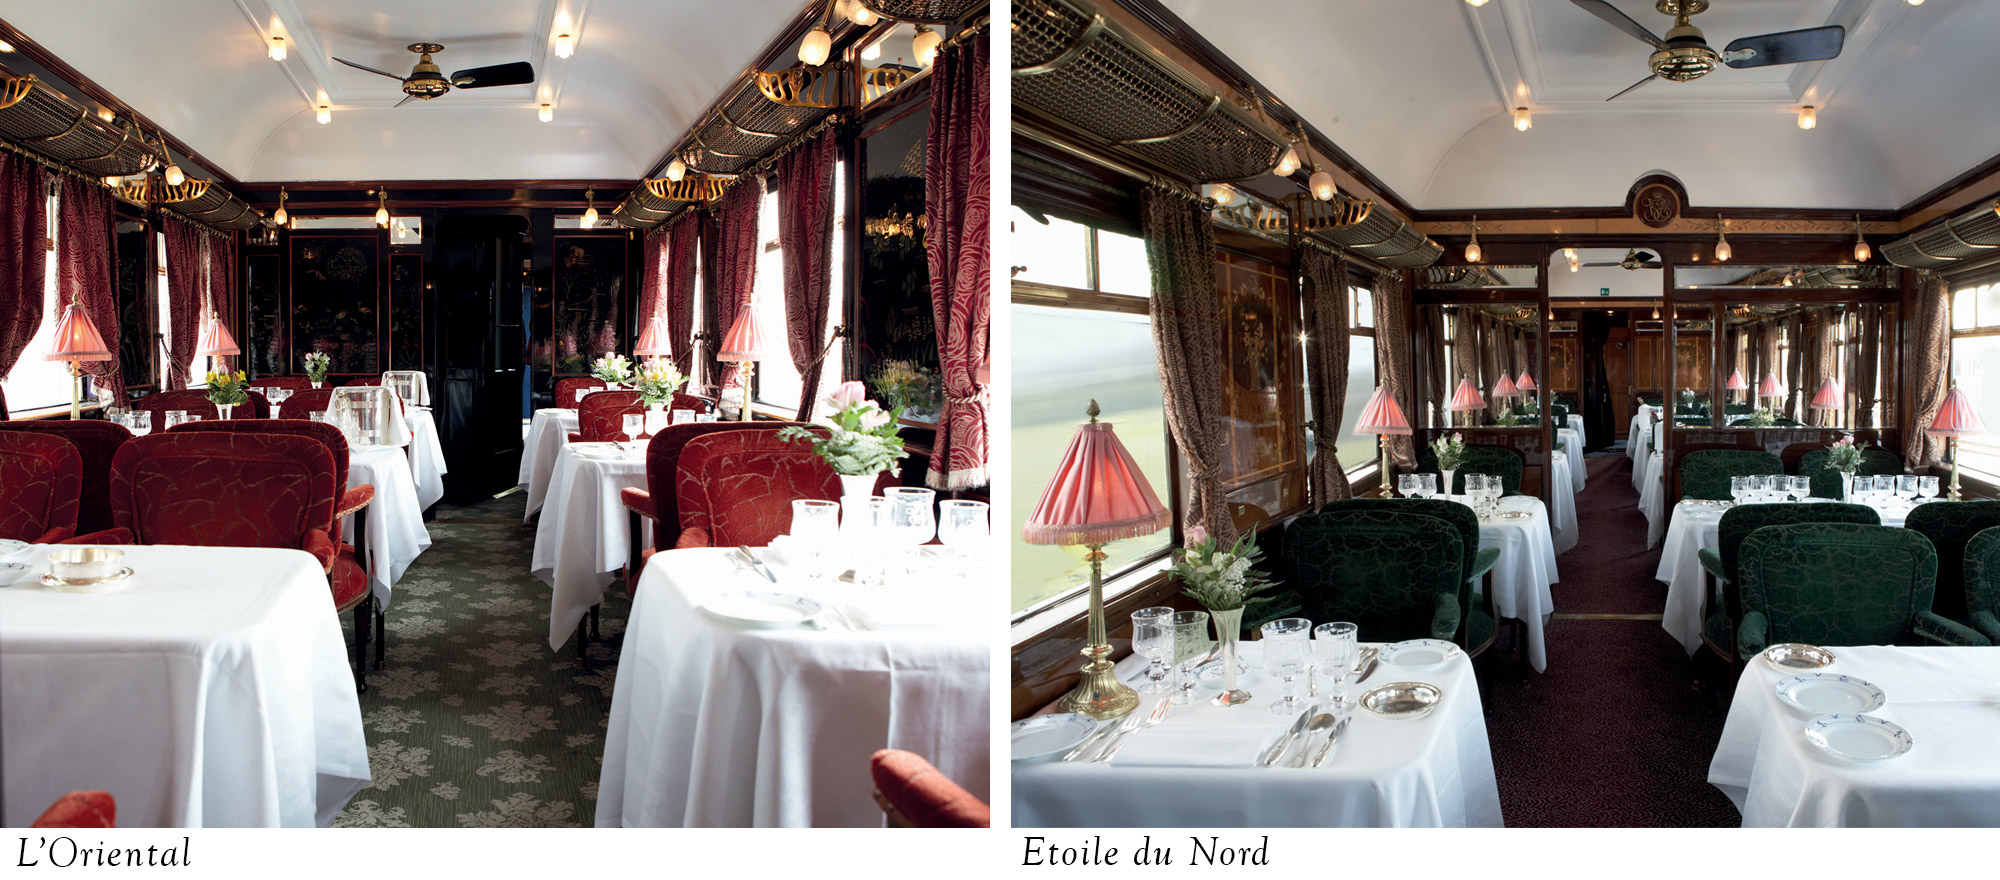 Dining on the Venice Simplon-Orient-Express